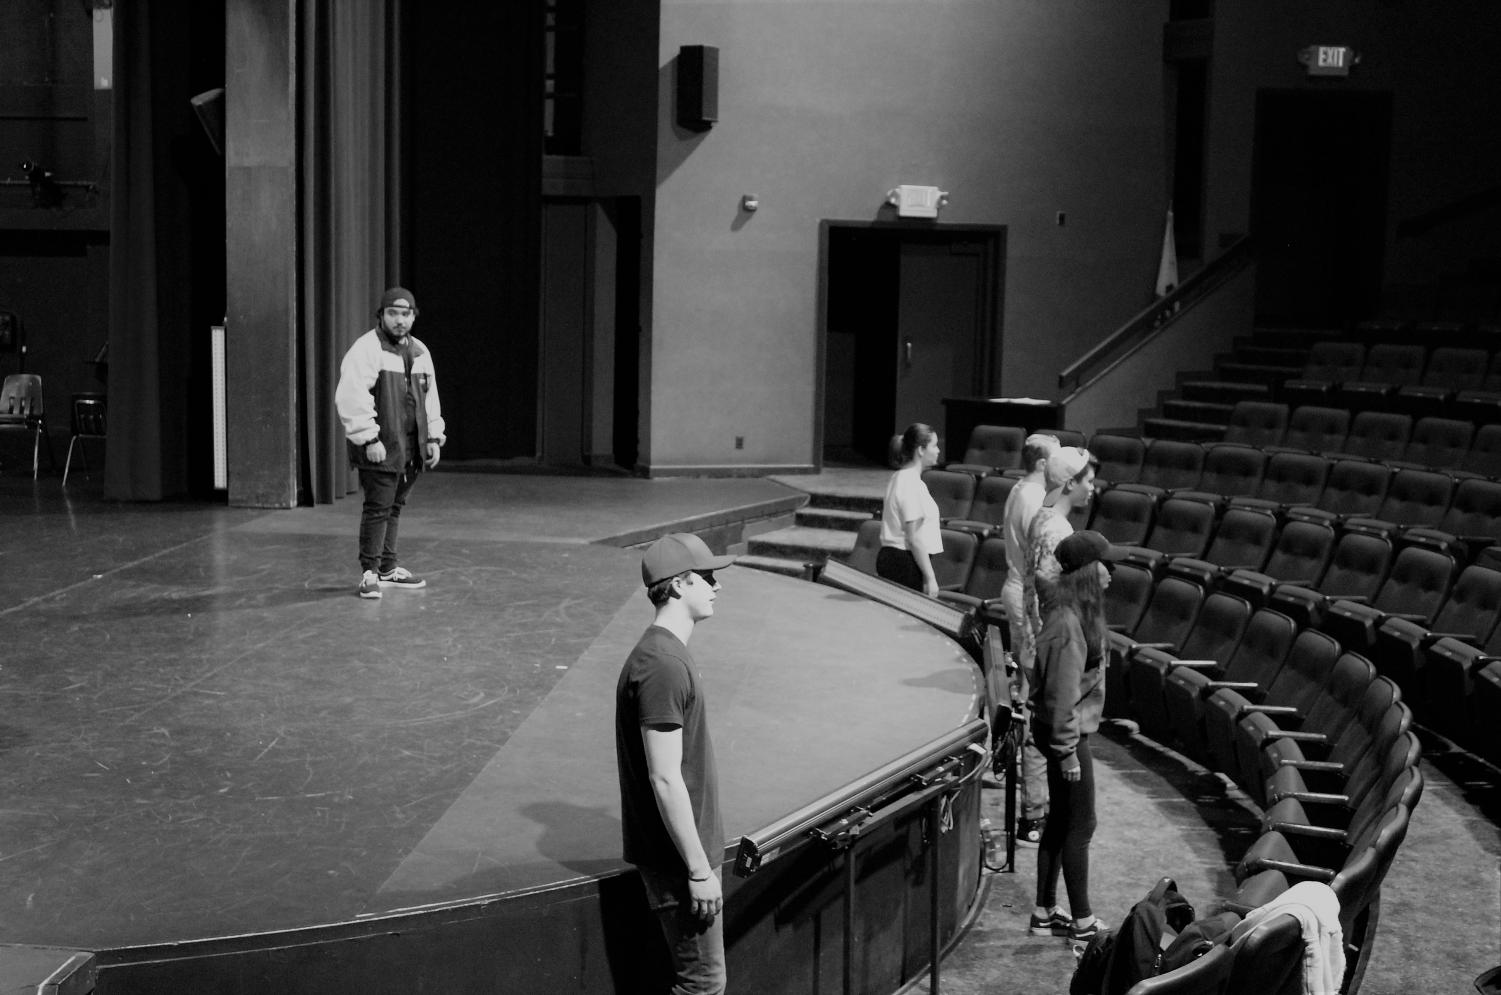 Andrew Martinez (Loner) stands aside from Will Huffaker (AP), Natalie Ezelle (Perfect), Nick Lambert (Jack), Jayromy Mercado (Prep), and Olivis Gonzales (Faith) during an inner monologue.